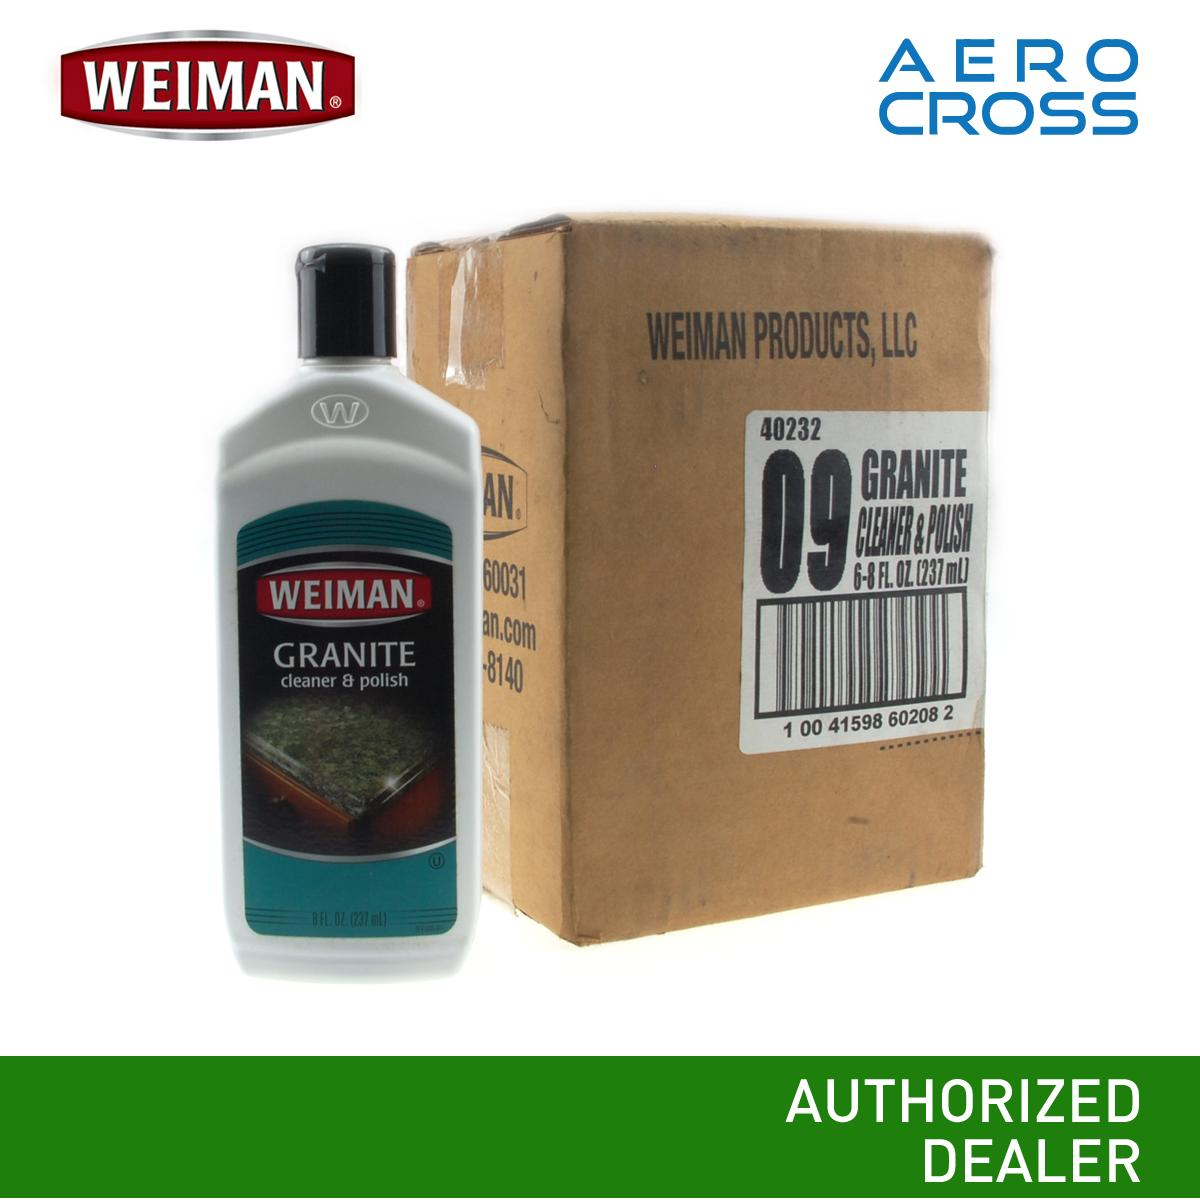 Ac Weiman Granite Cleaner And Polish 1 Box (6 Pcs.) By Aerocross Phils.